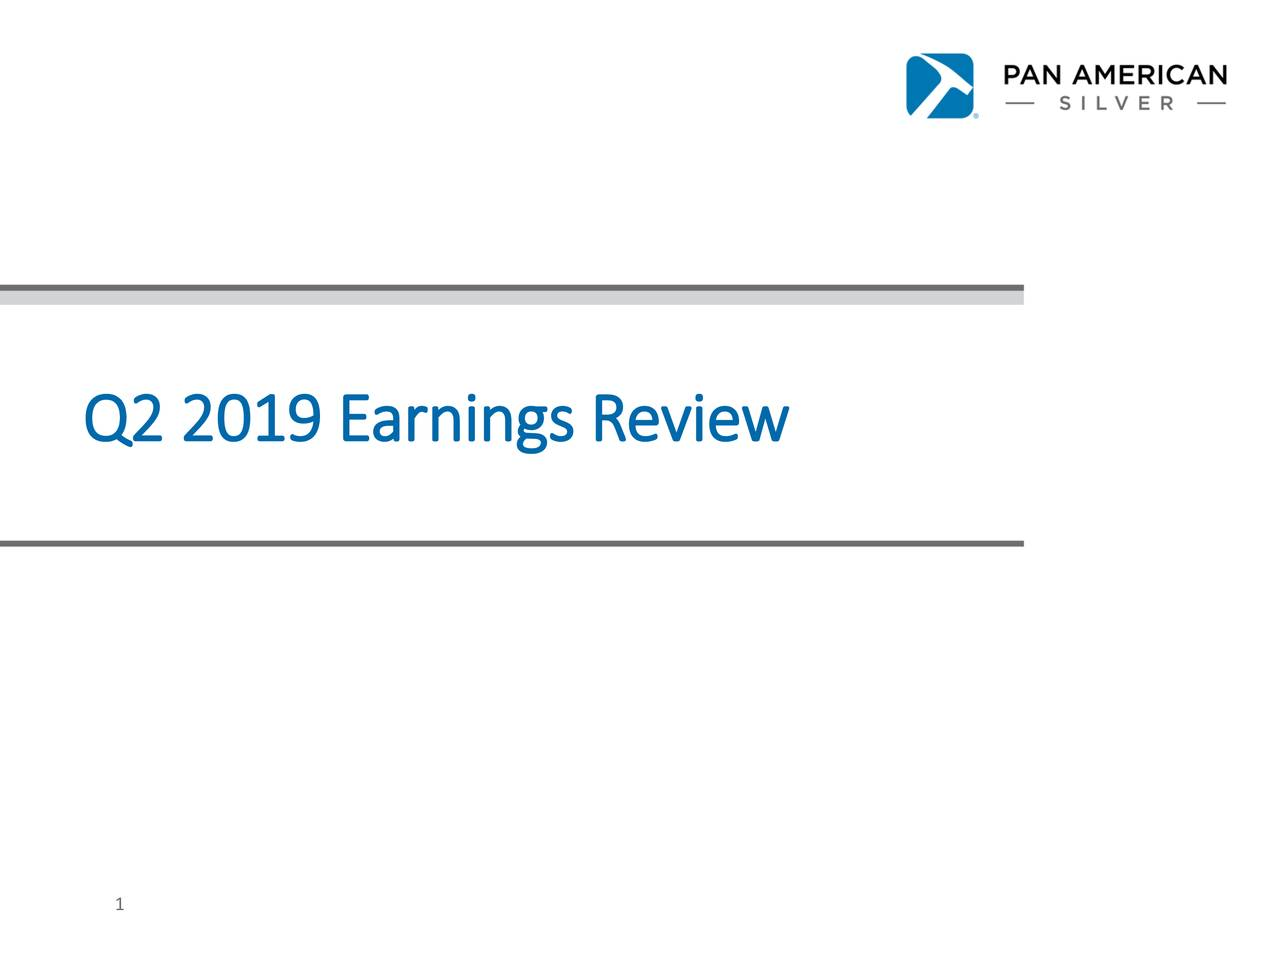 Q2 2019 Earnings Review